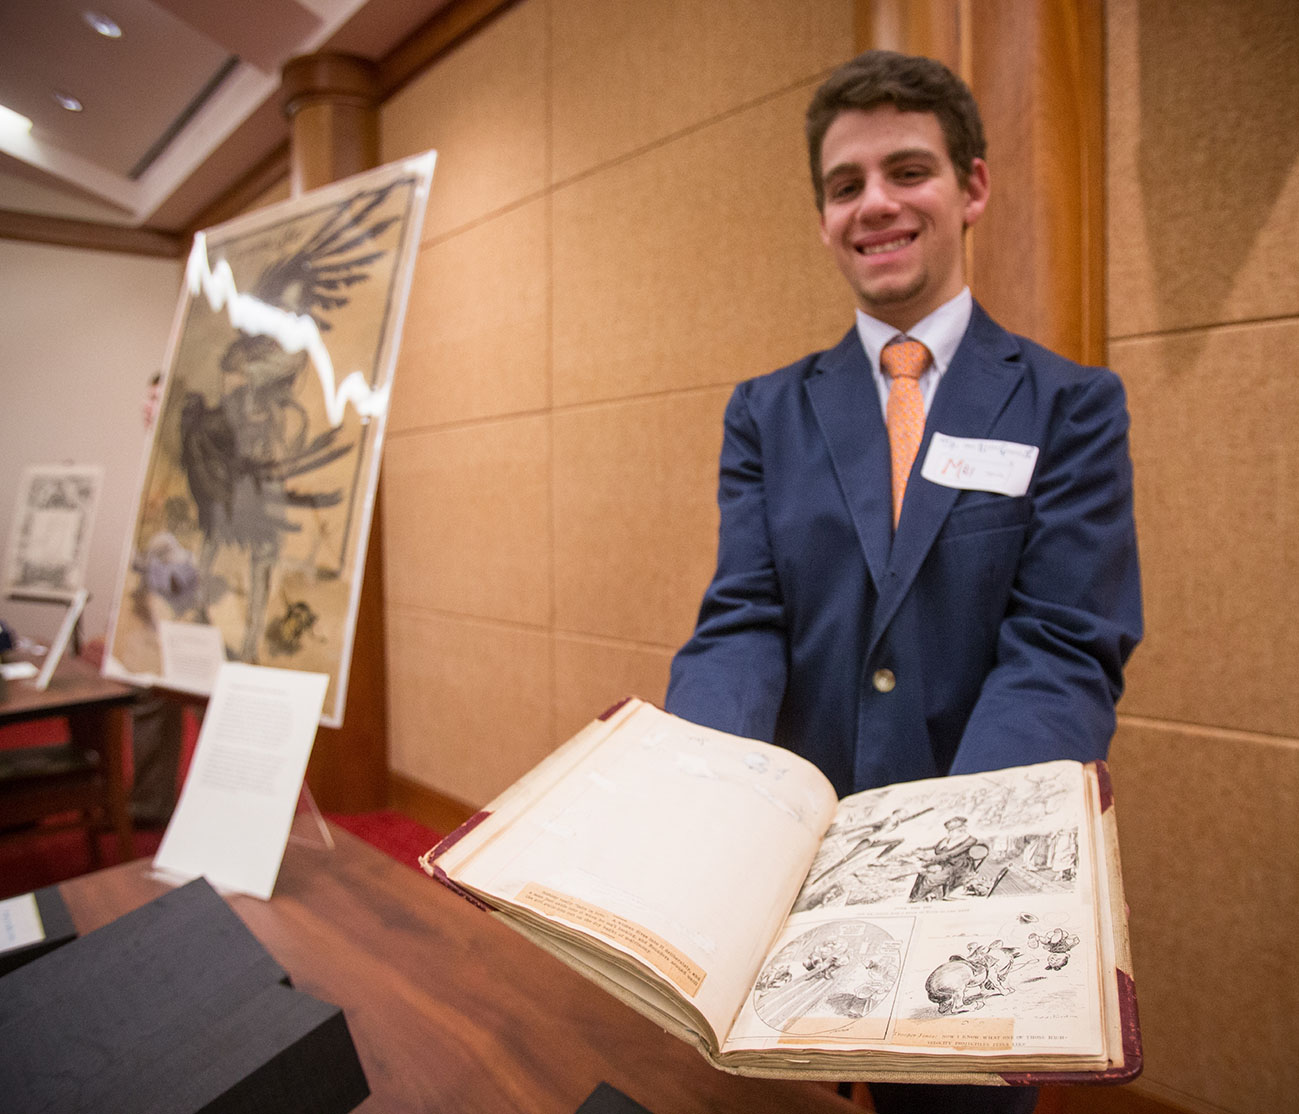 Max Novick presents a WWI era scrapbook, November 18, 2014. (Photograph by Sanjay Suchak)